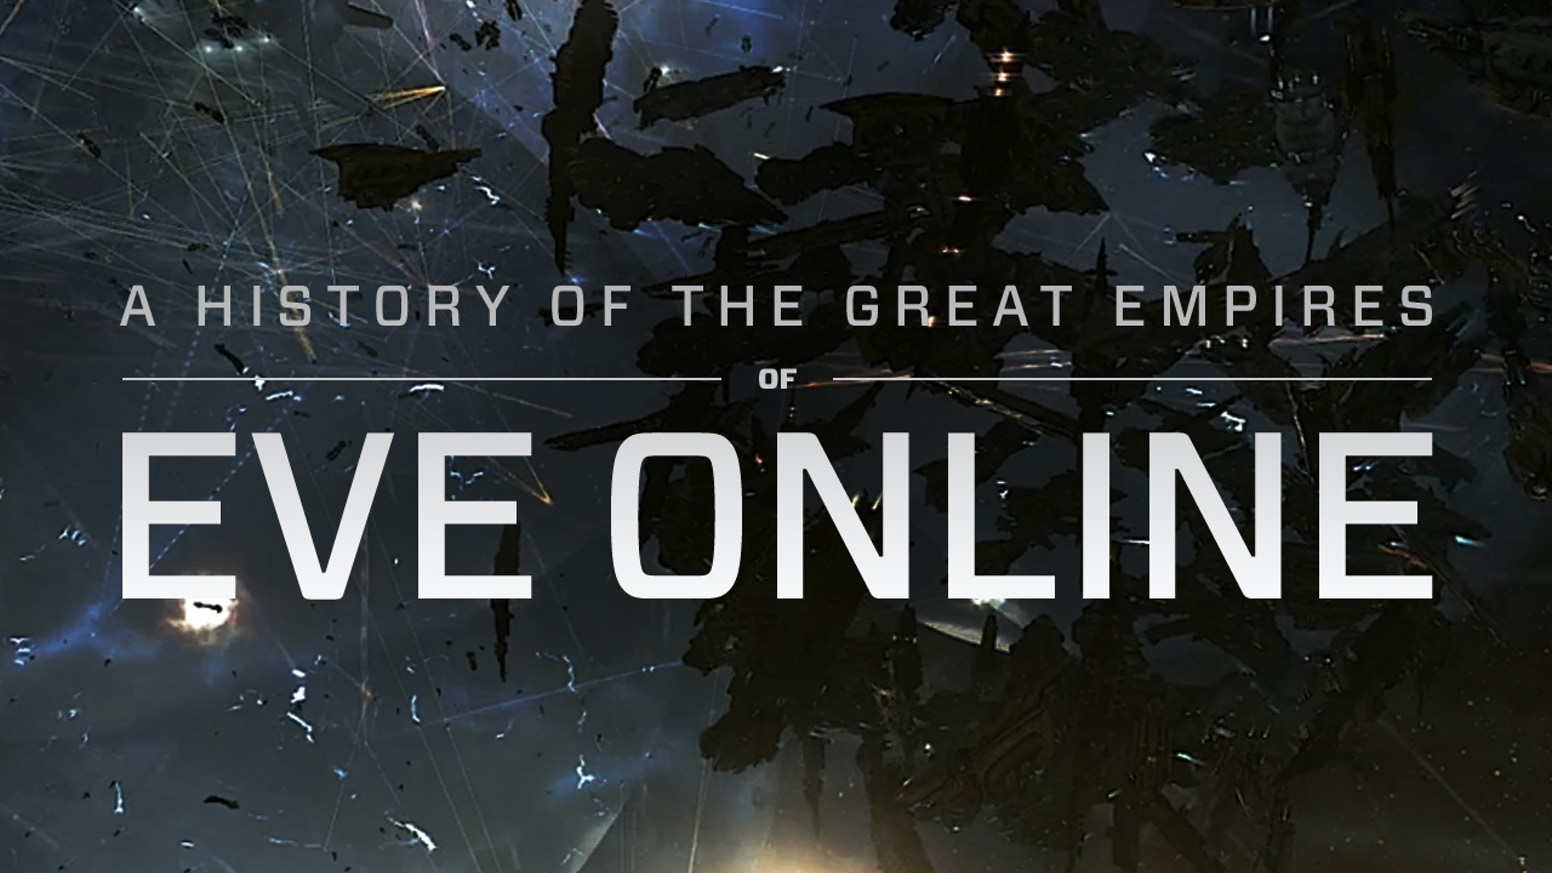 A narrative history book about the politics, warfare, betrayal, and culture that shaped the first decade of Eve Online.